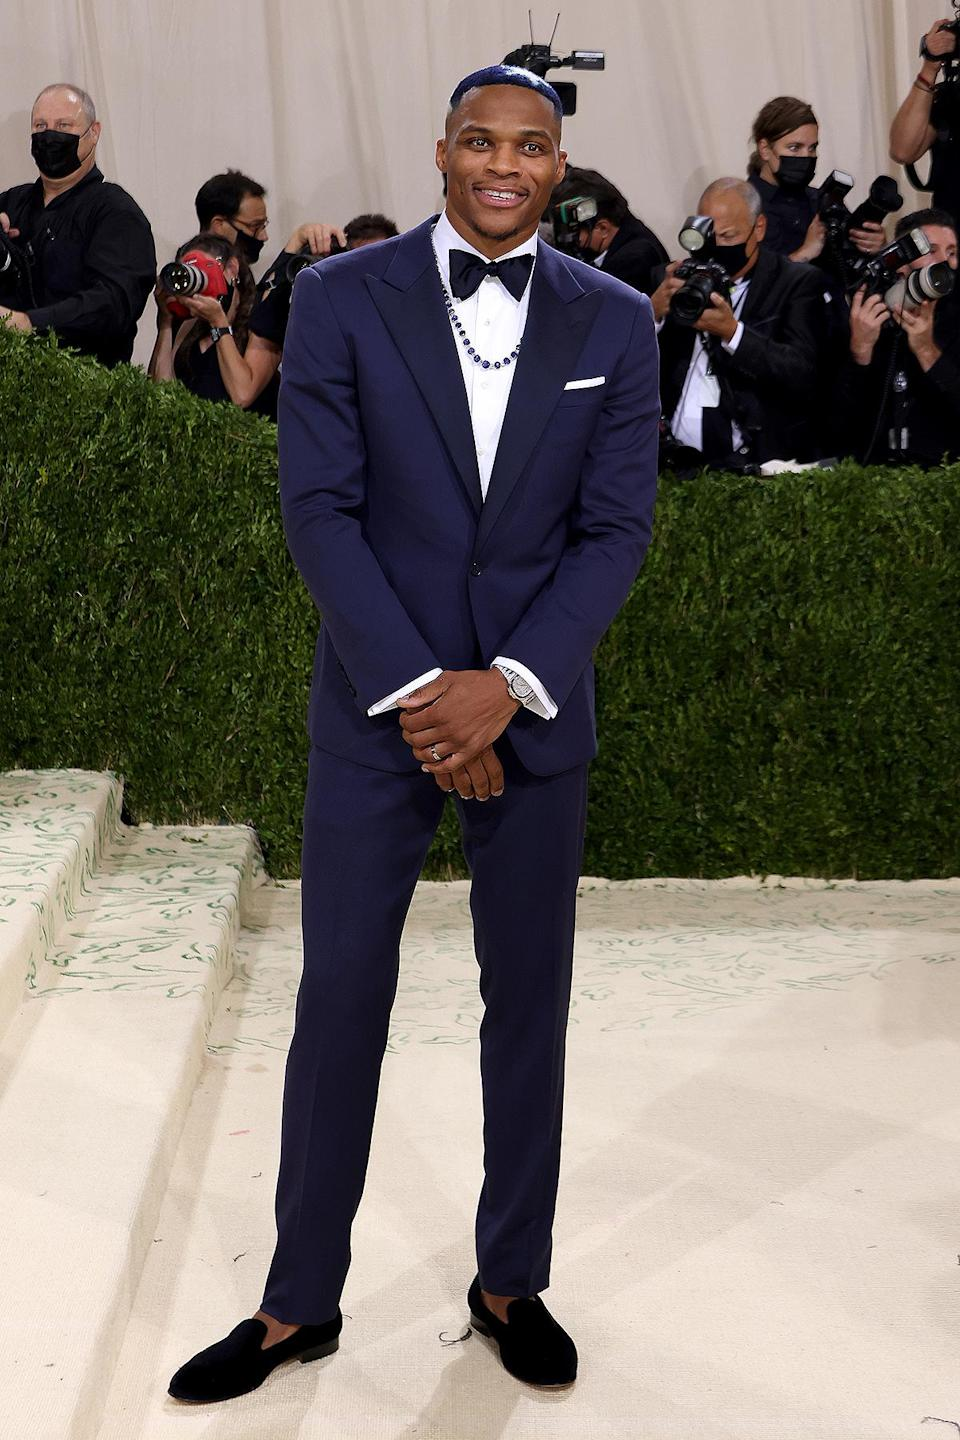 <p>The NBA player kept it classic in a Ralph Lauren navy tux and loafers, but topped off the look with his hair painted blue with white stars, a hair design created by Sarah Shears of One Eleven Lounge.</p>